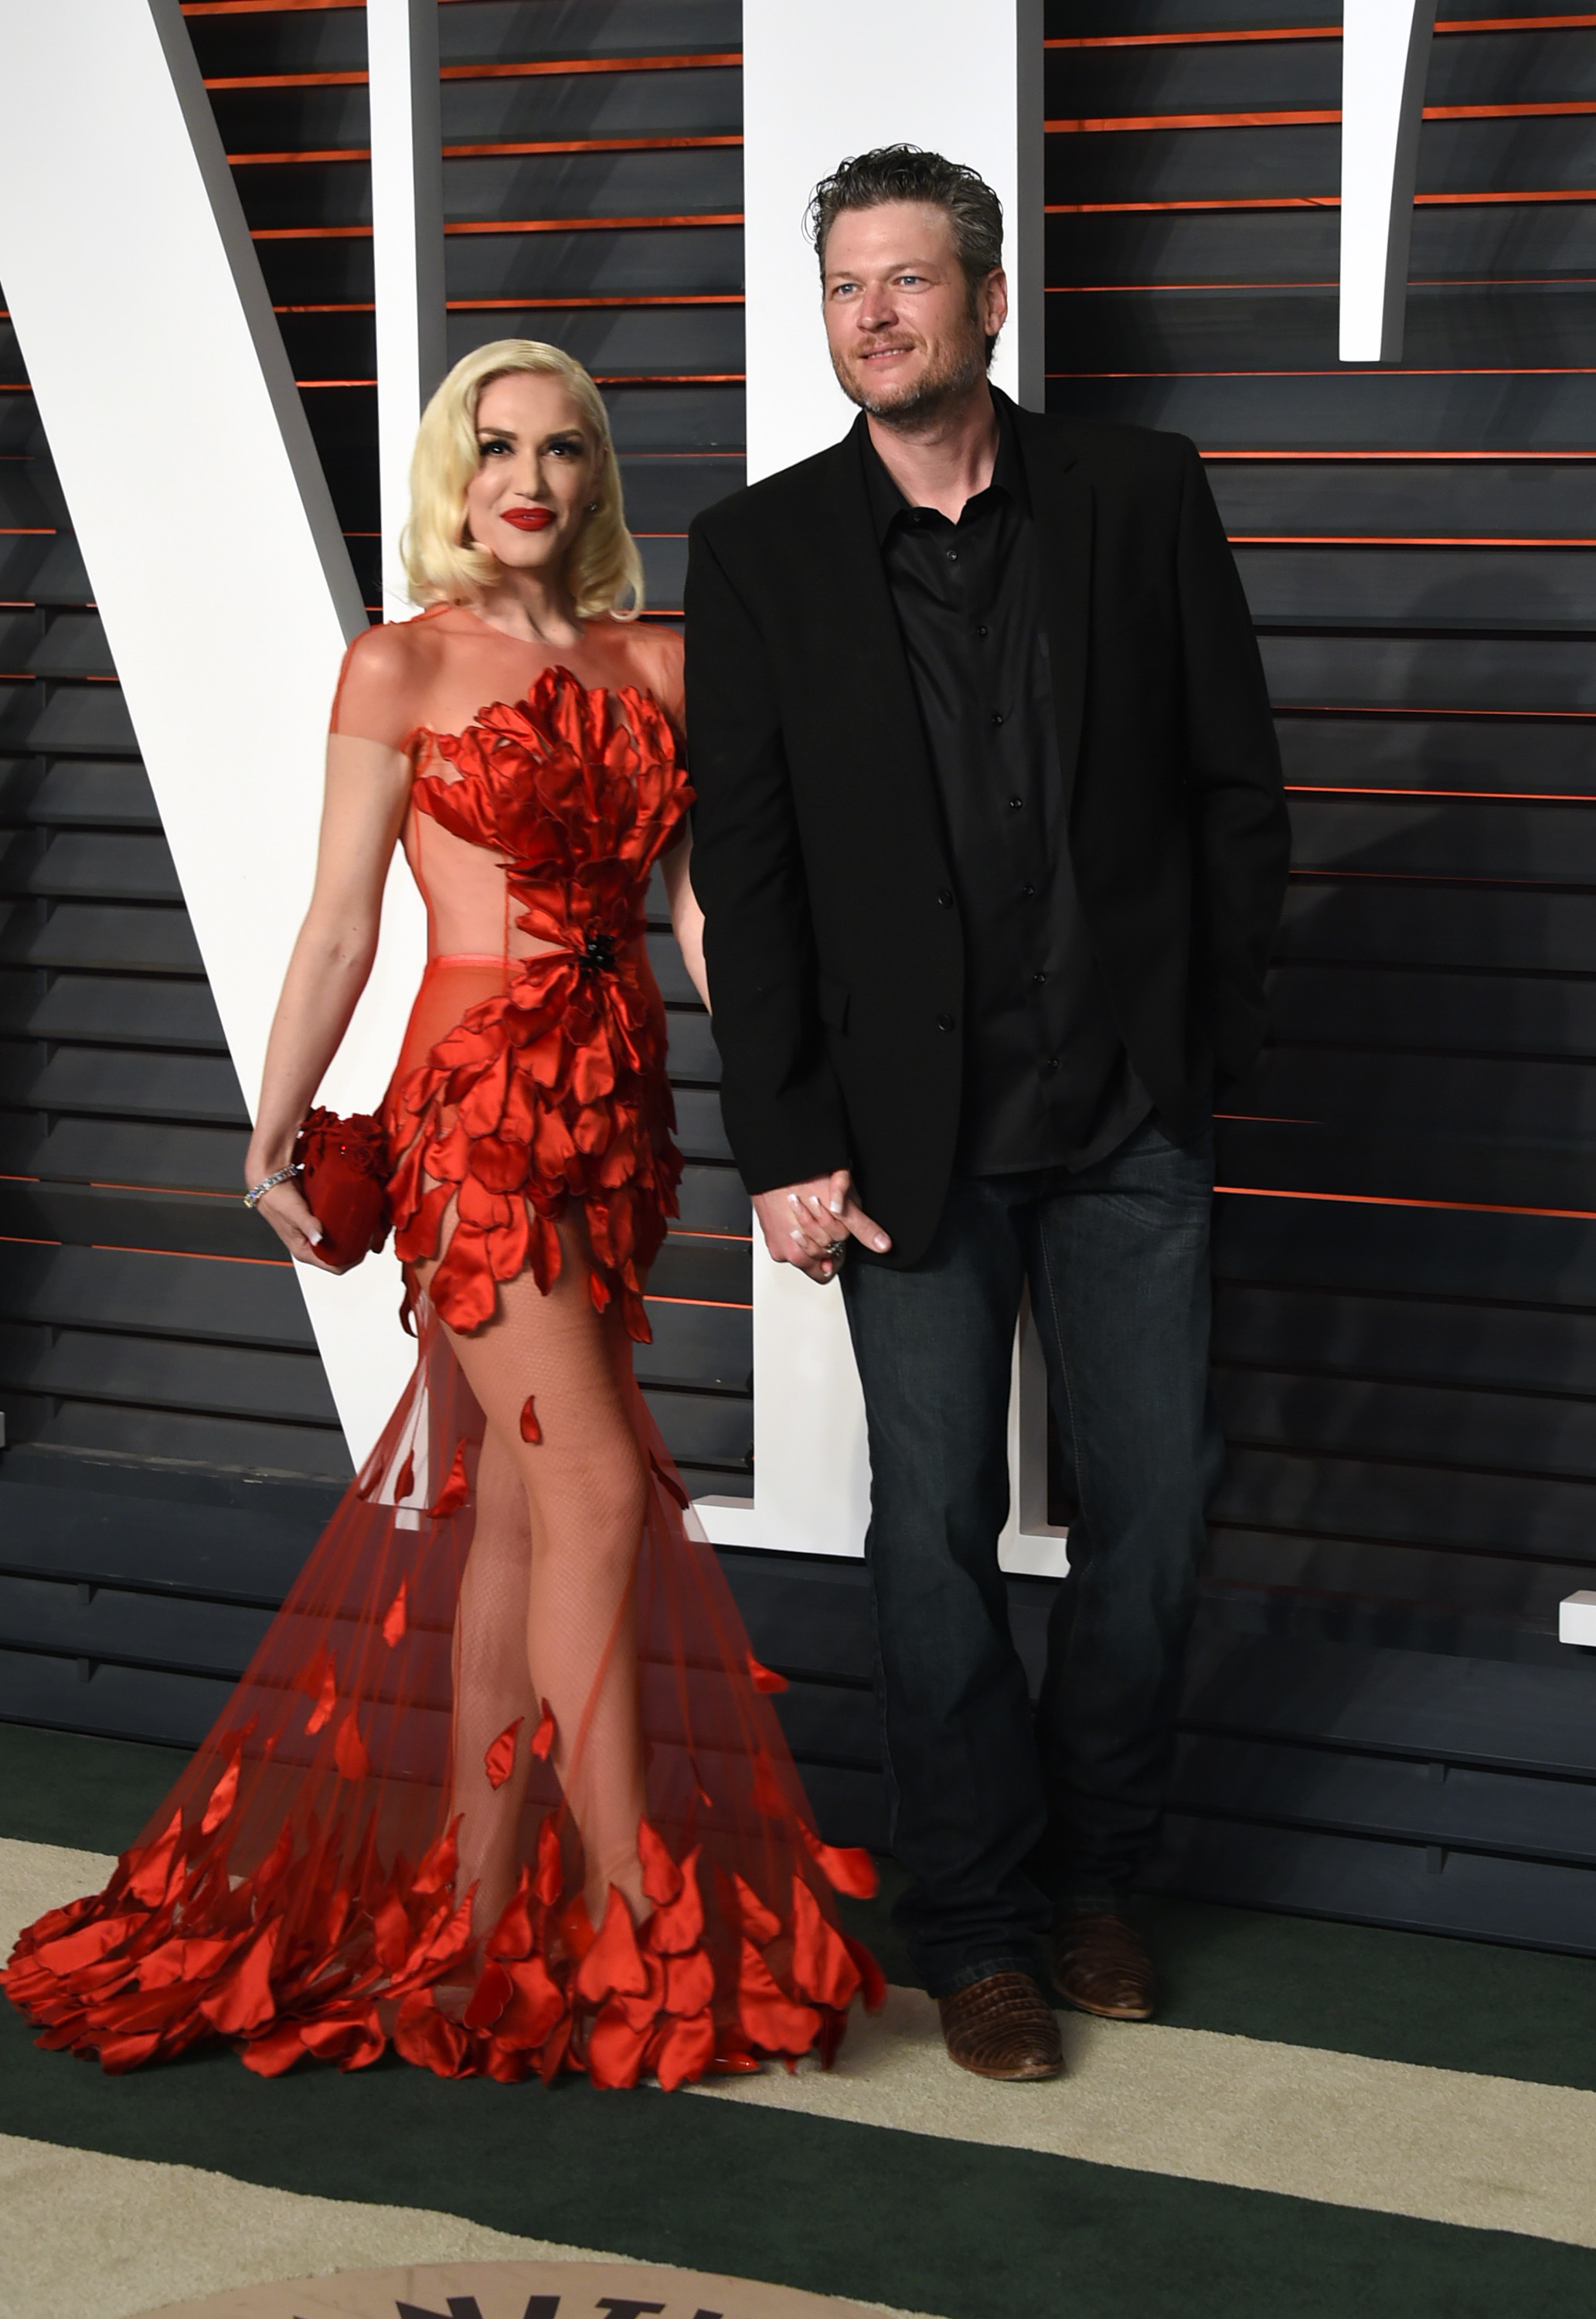 Blake Shelton wishes Gwen Stefani a happy birthday